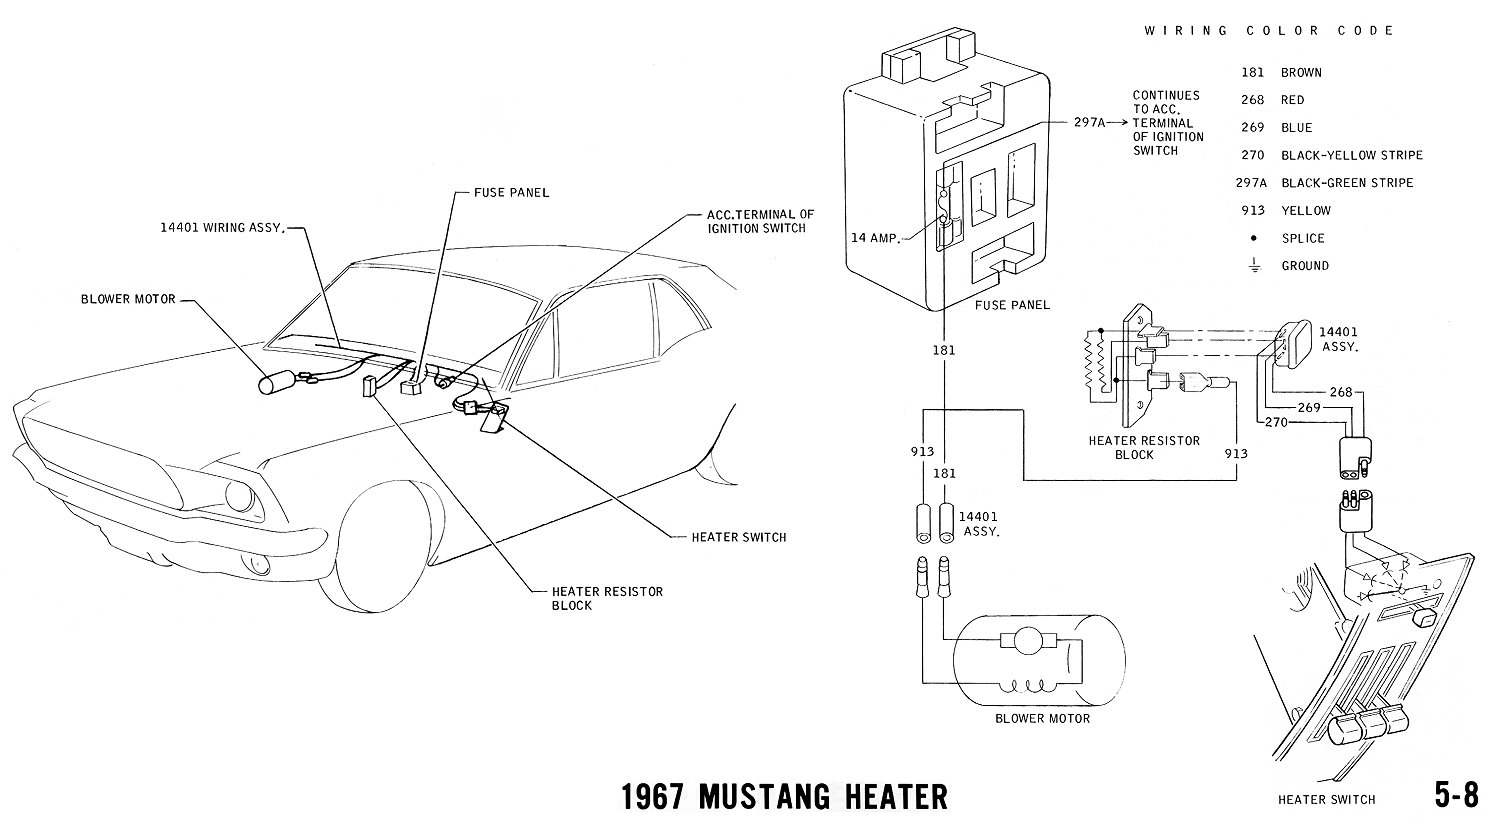 67heater 1967 mustang wiring and vacuum diagrams average joe restoration